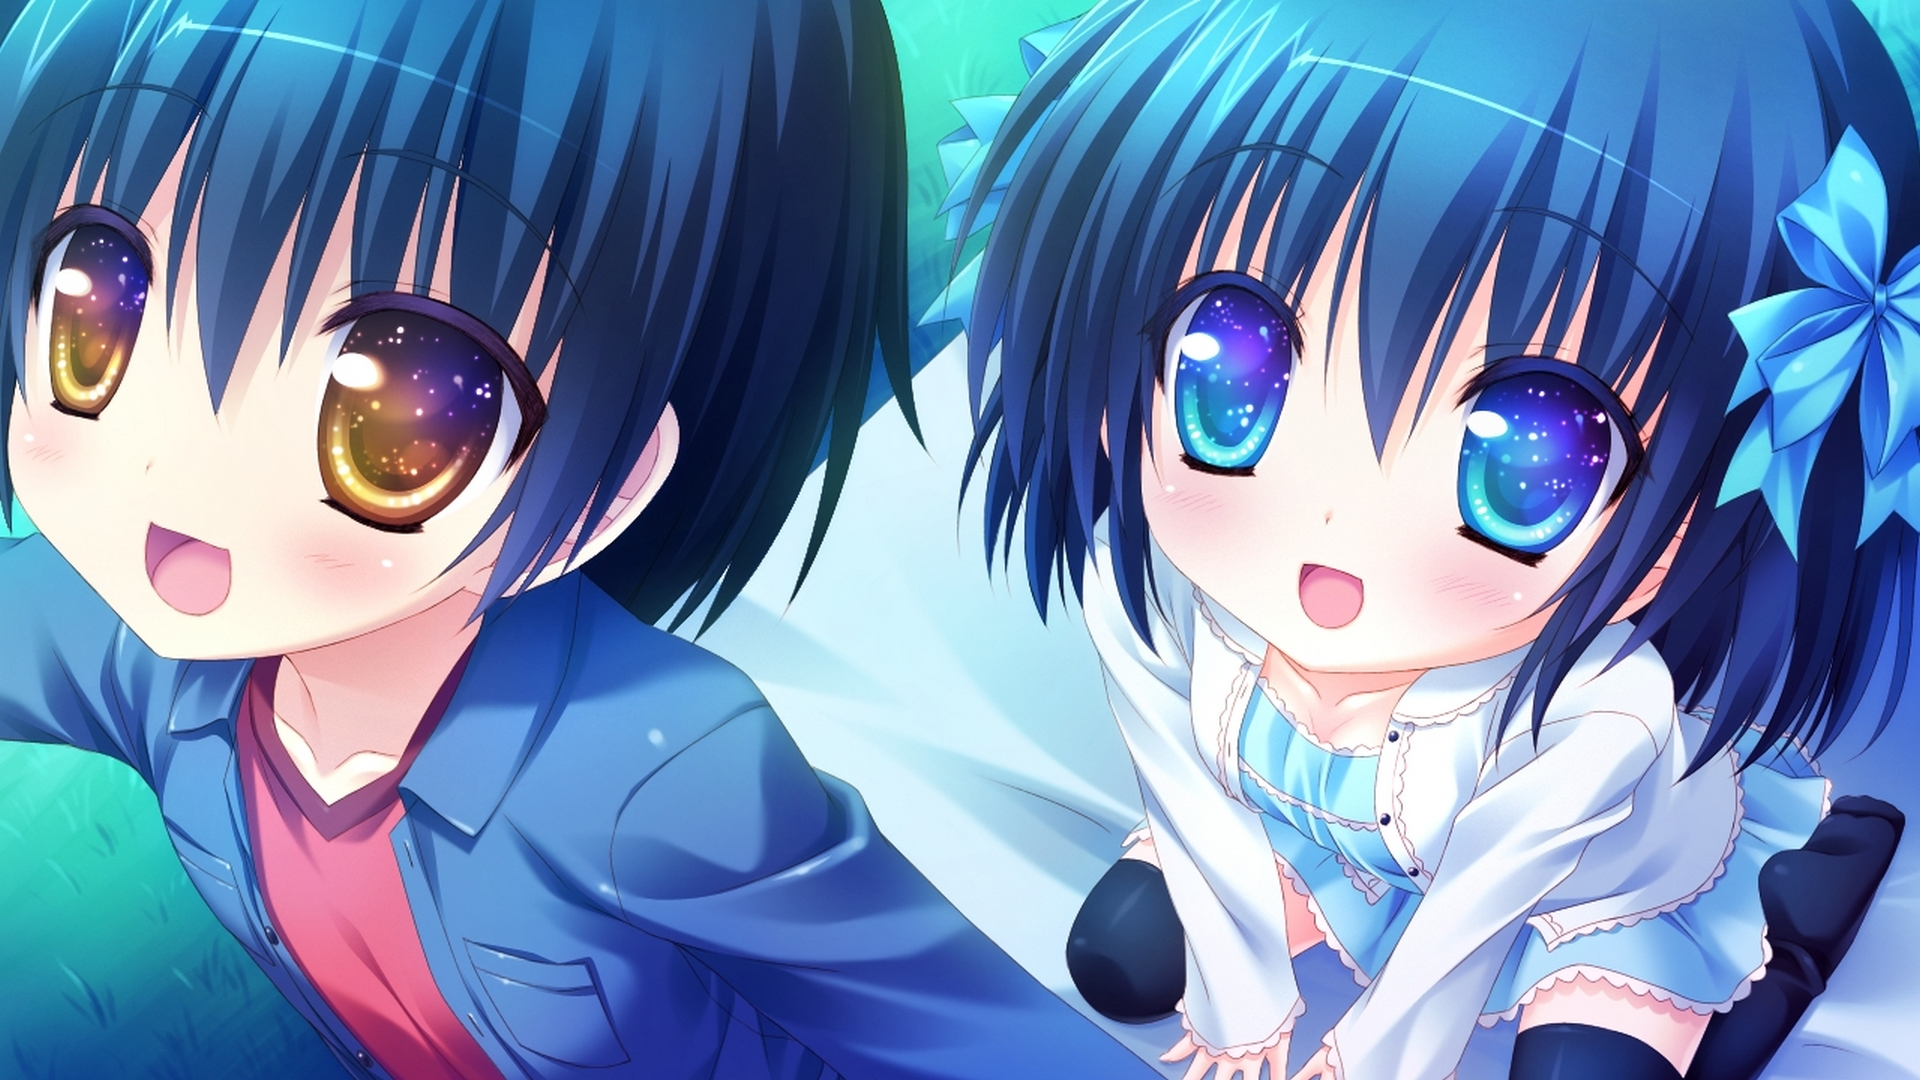 Sweet Anime Love Wallpaper Desktop : anime love - image #11